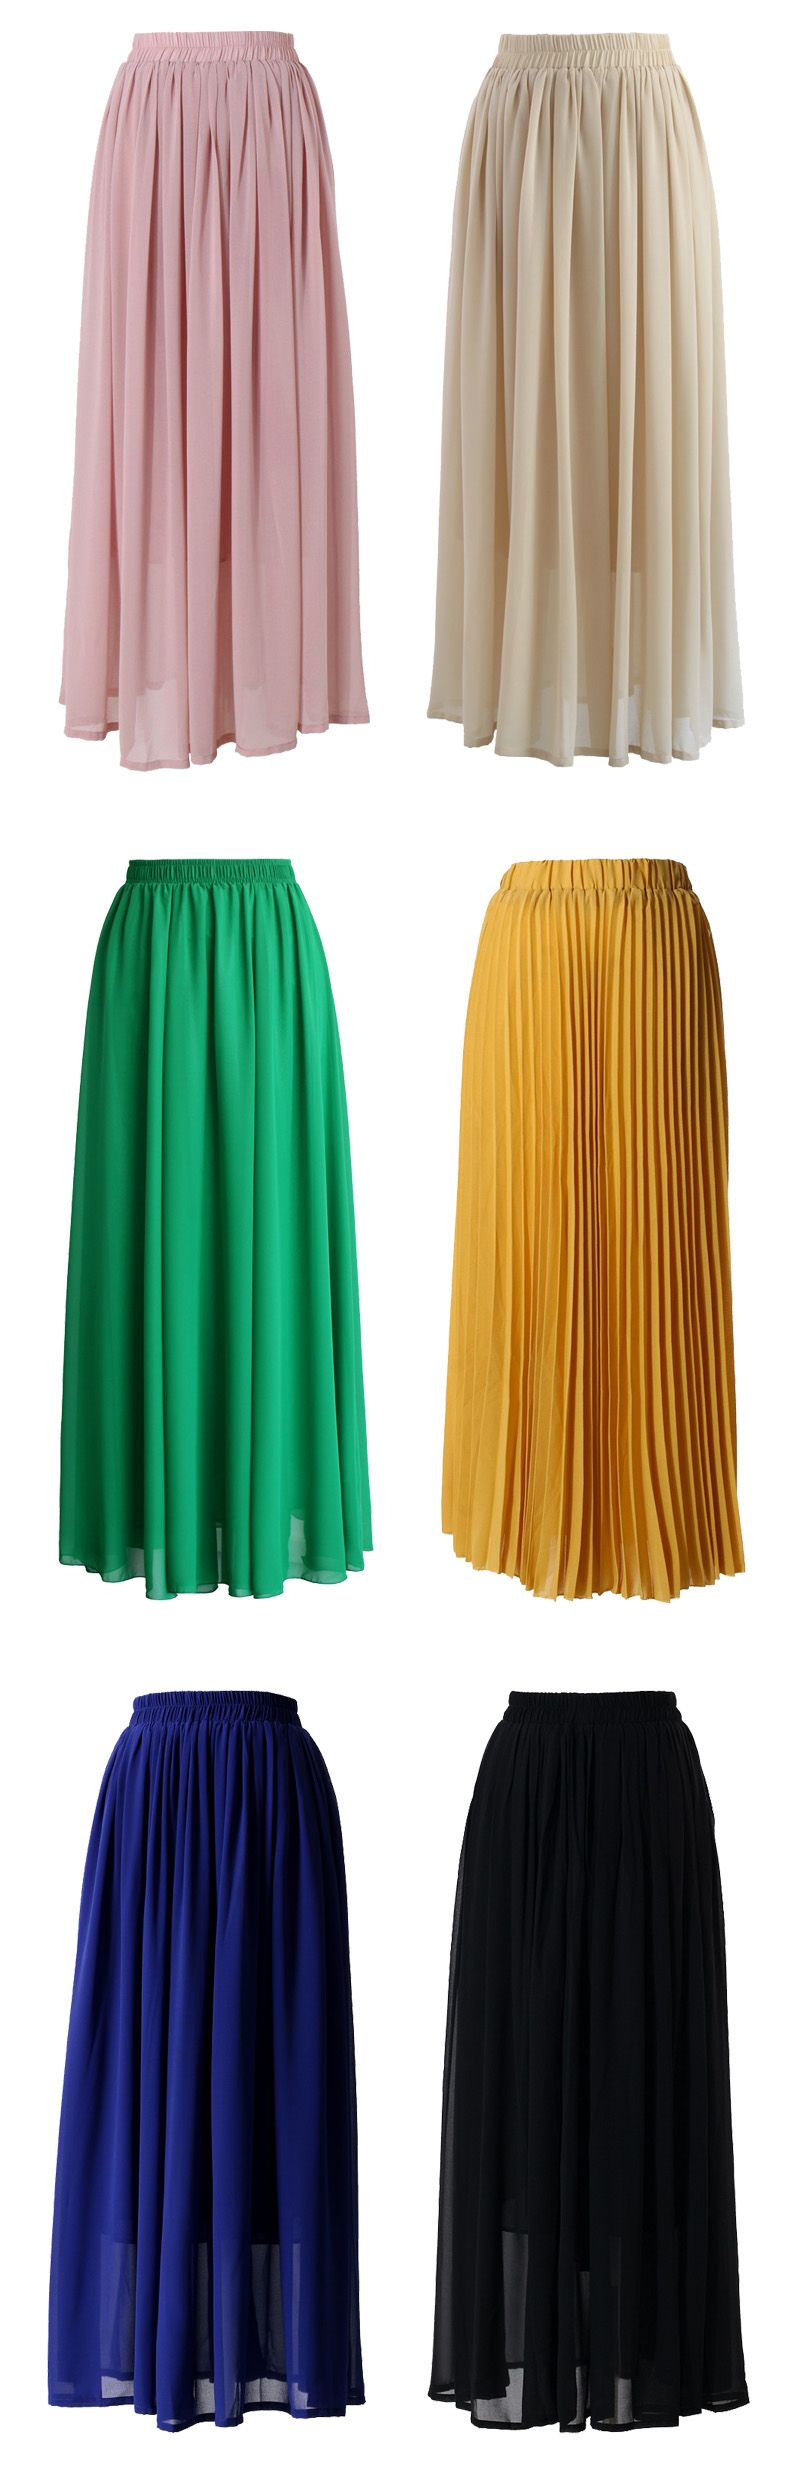 Maxi skirt collection gimme pinterest clothes clothing and